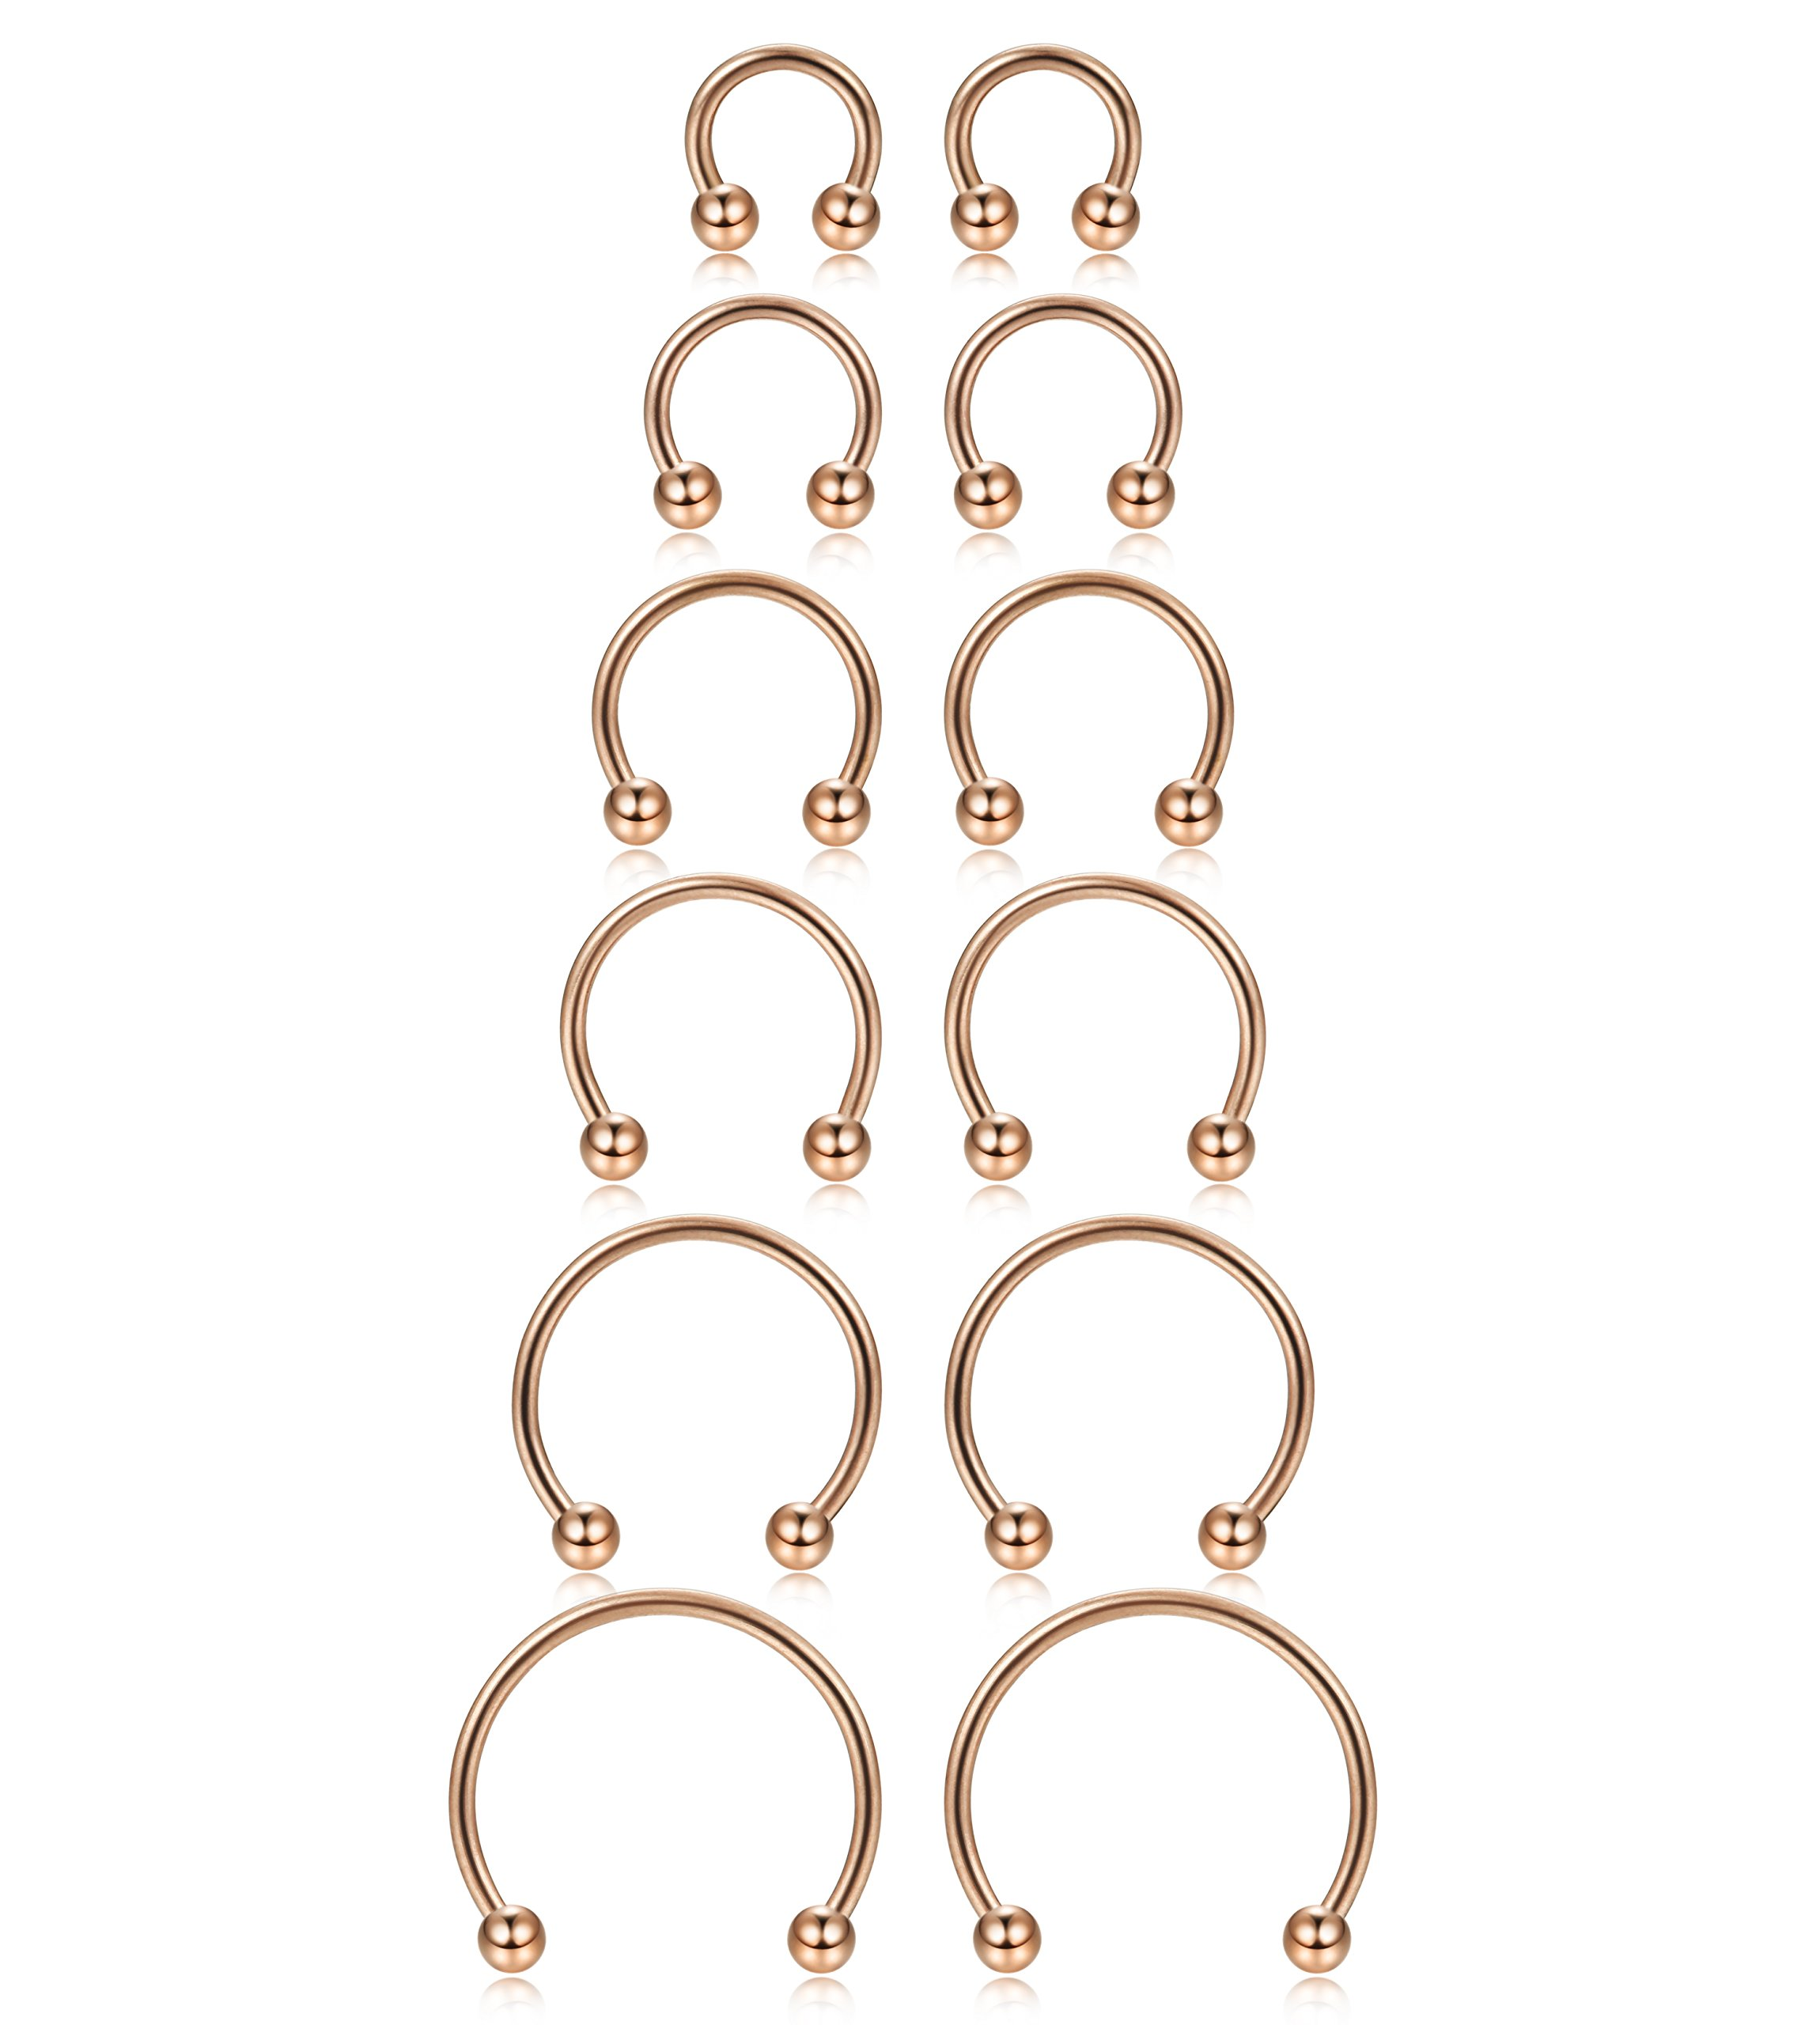 ORAZIO 6 Pairs 14-16G Stainless Steel Nose Rings Horseshoe Earring Fake Nose Septum Body Piercing 6MM-16MM